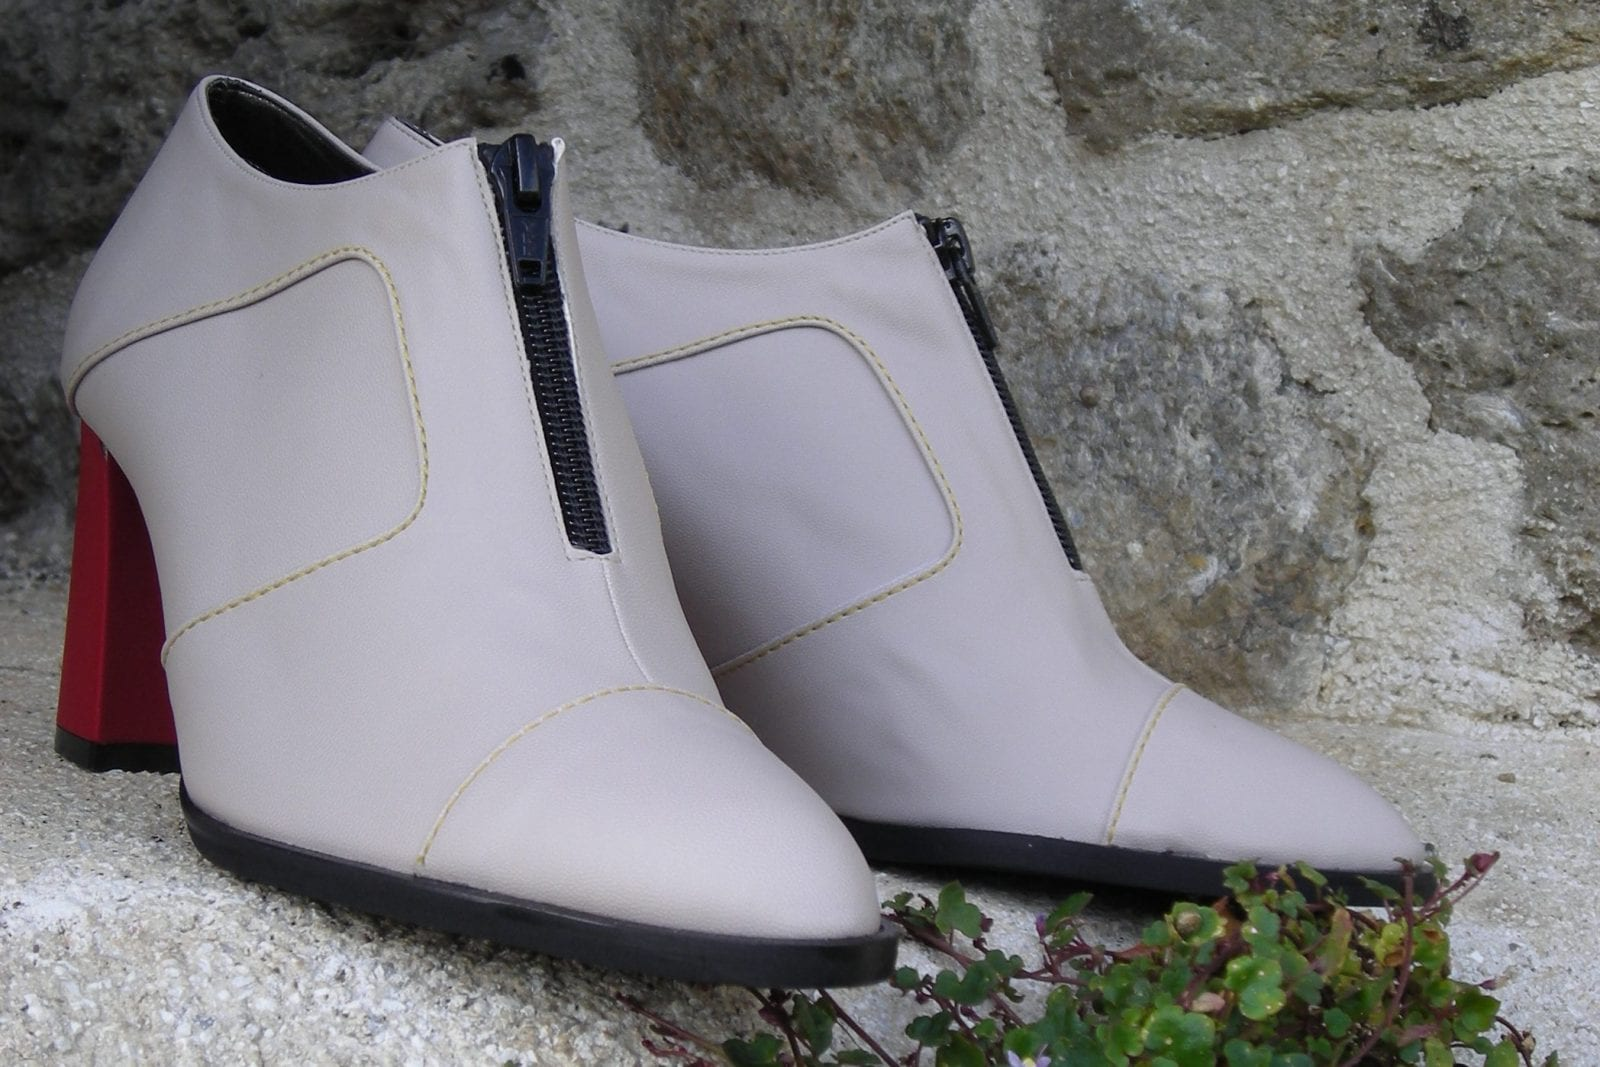 Chaussures vegan blanches style bottes